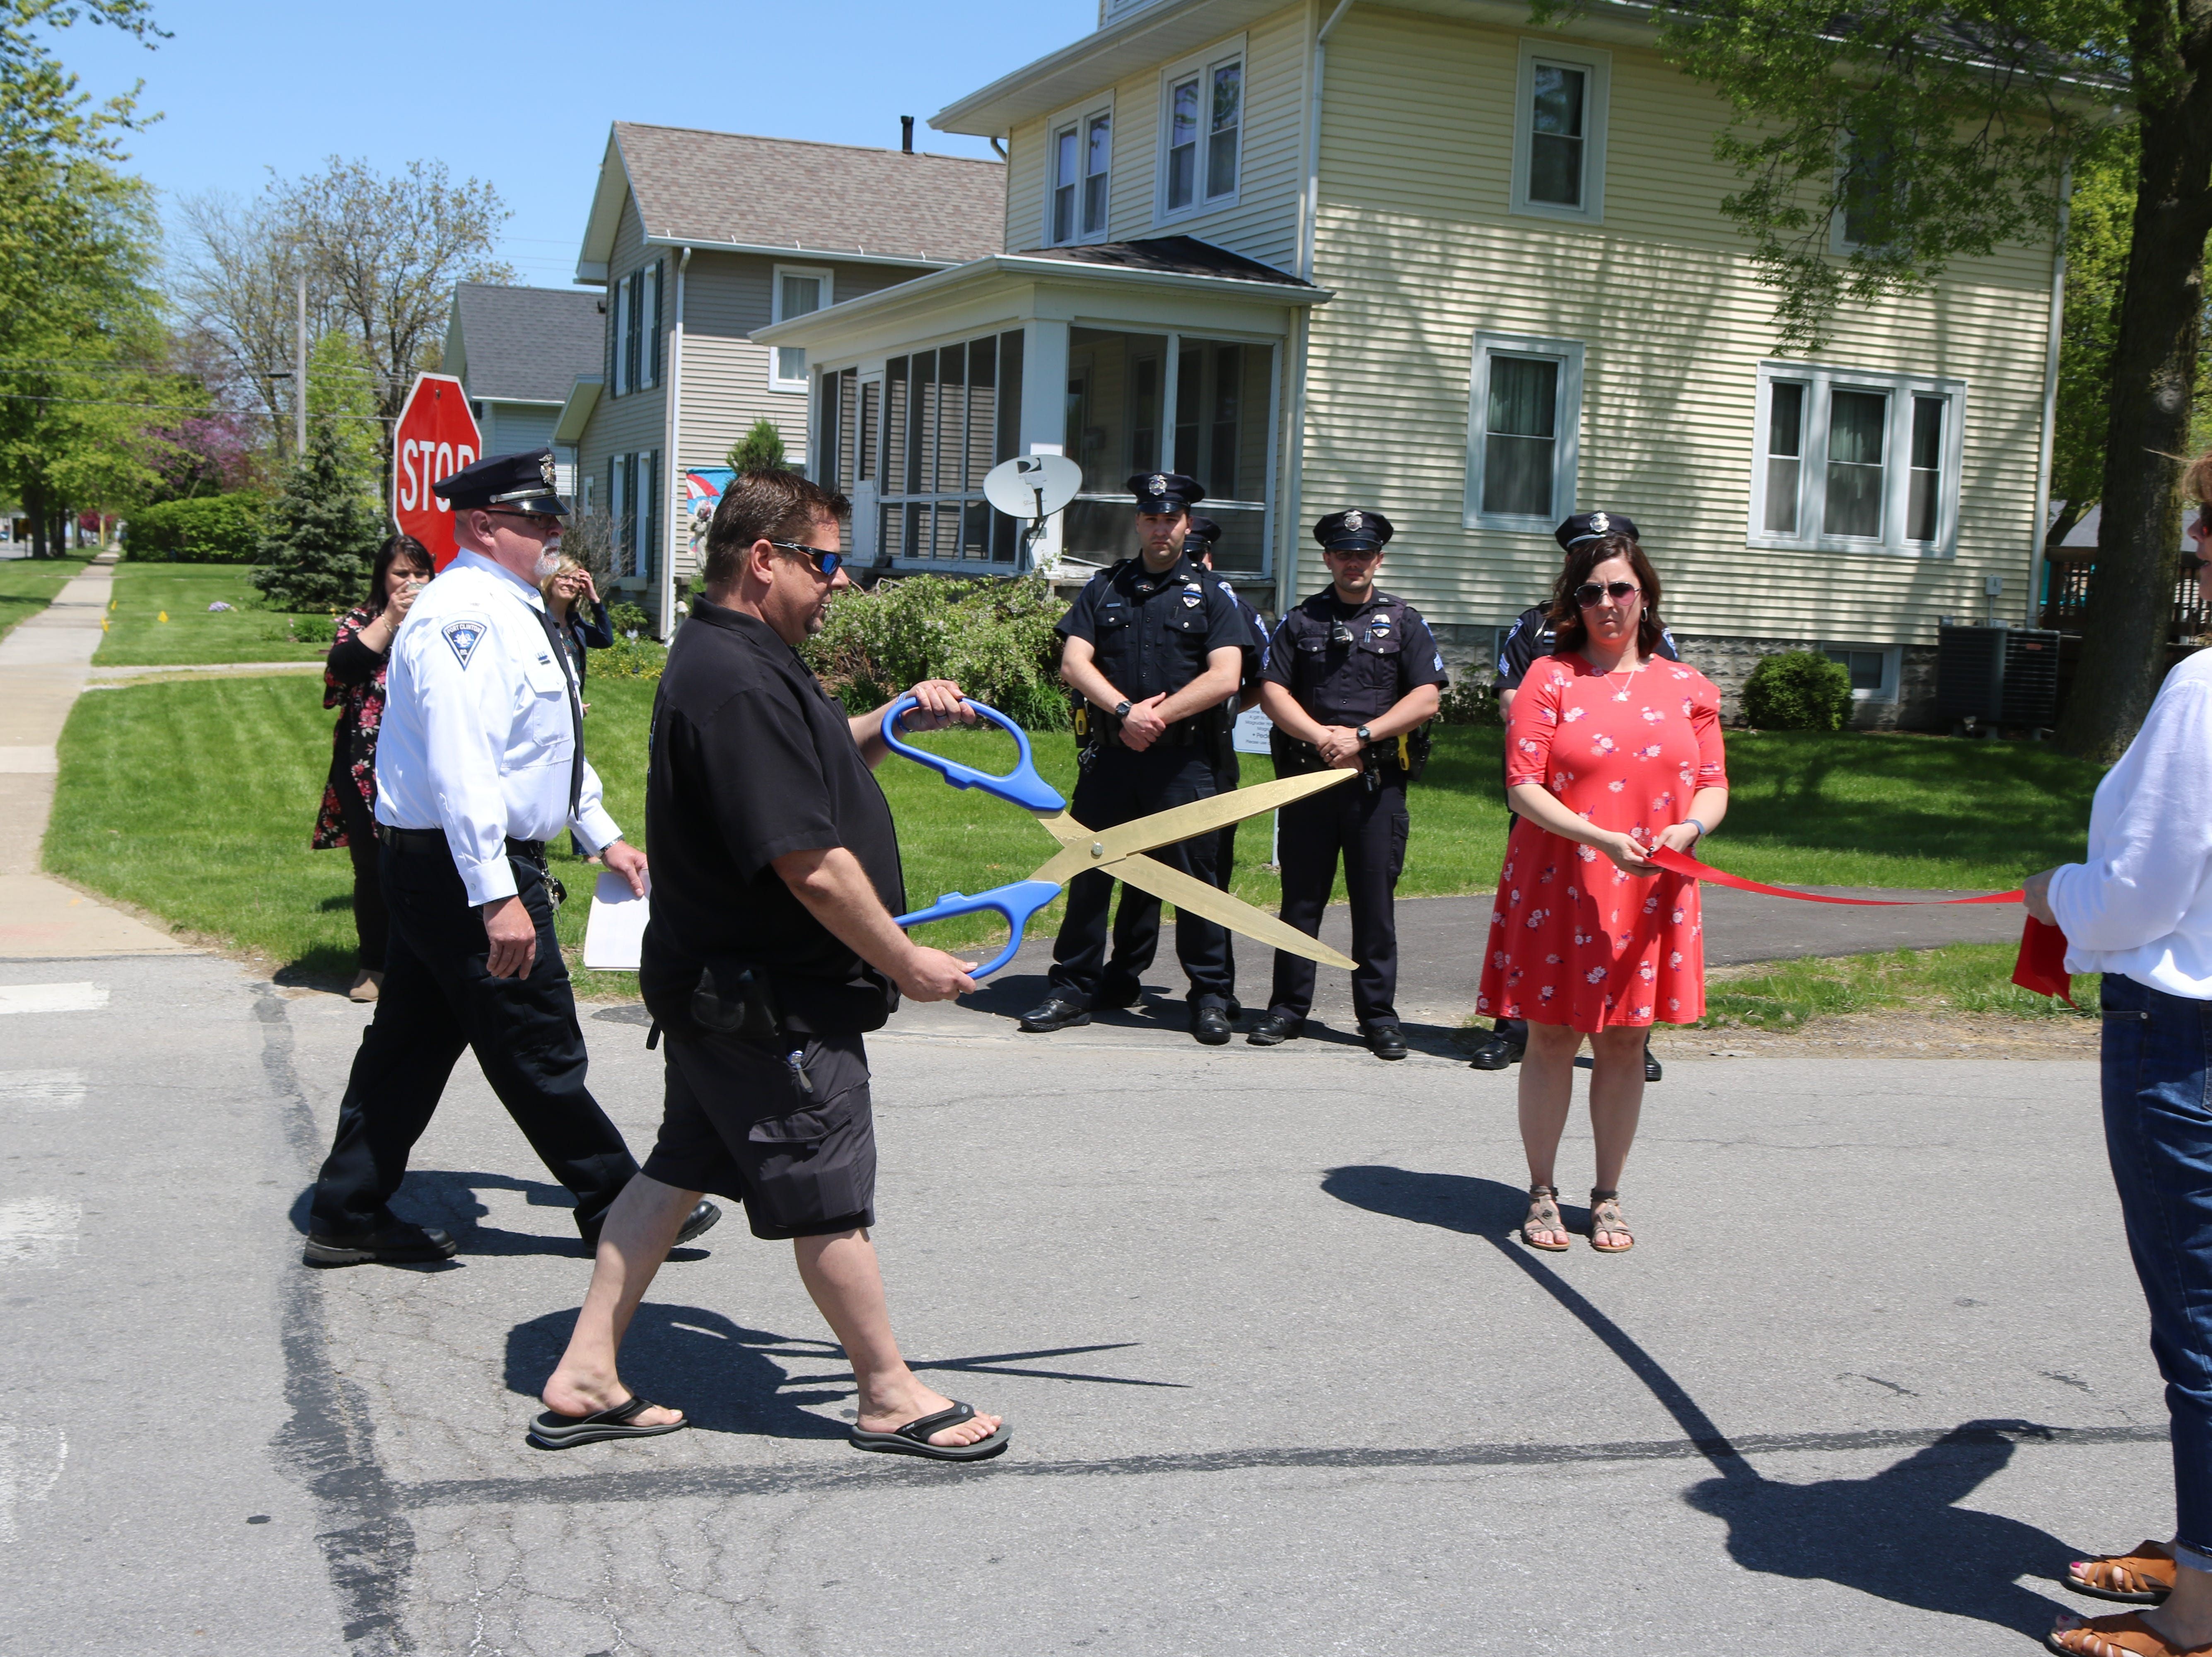 Billy Rigoni, son of the late Sgt. Robert B. Rigoni, who died in a plane crash while responding to an emergency reported on Kelleys Island in 1983, prepares to cut the ribbon dedicating an eastern portion of 6th Street in his father's honor.